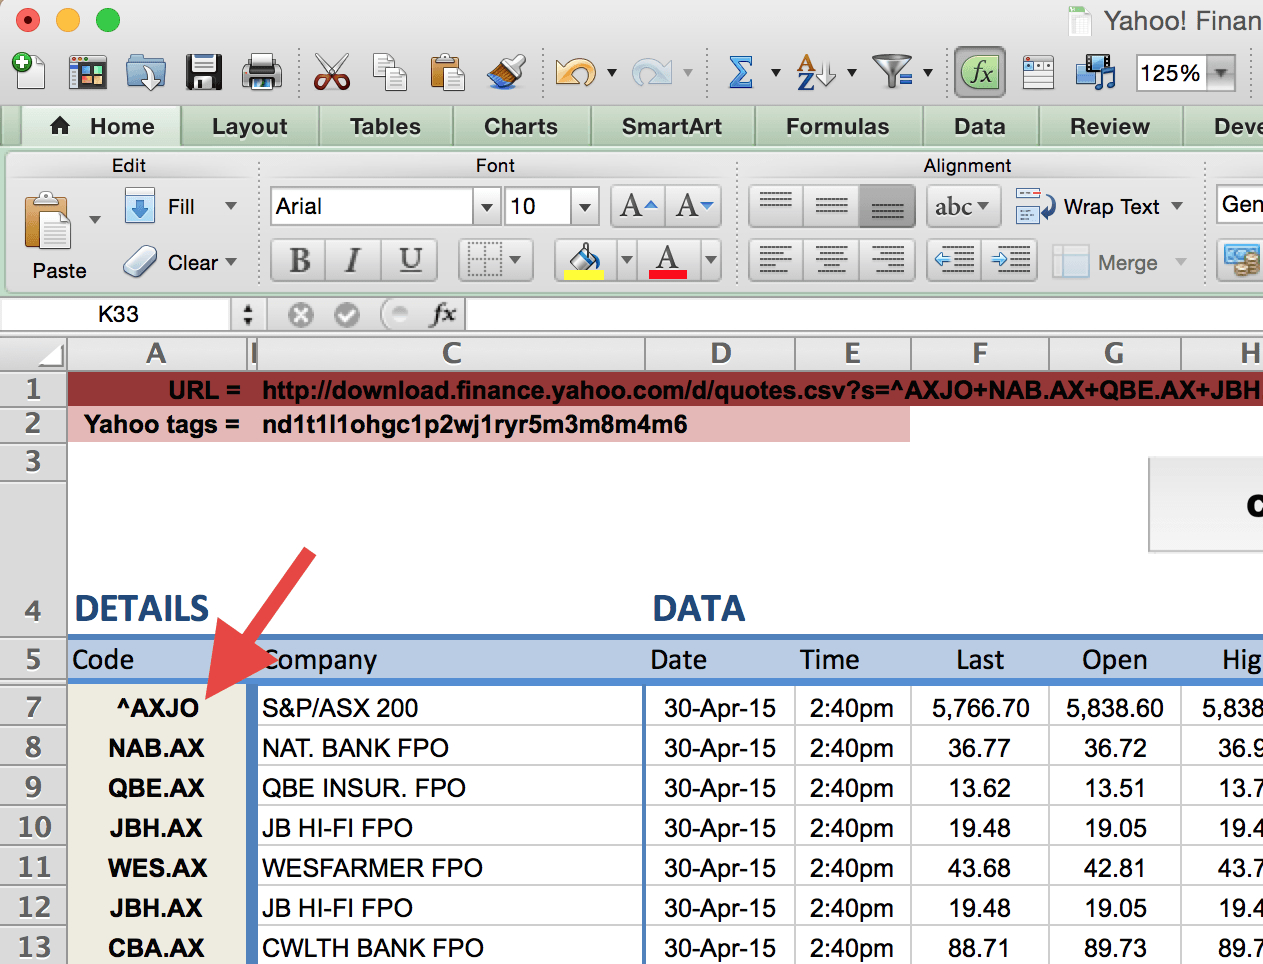 Live Excel Spreadsheet In How To Import Share Price Data